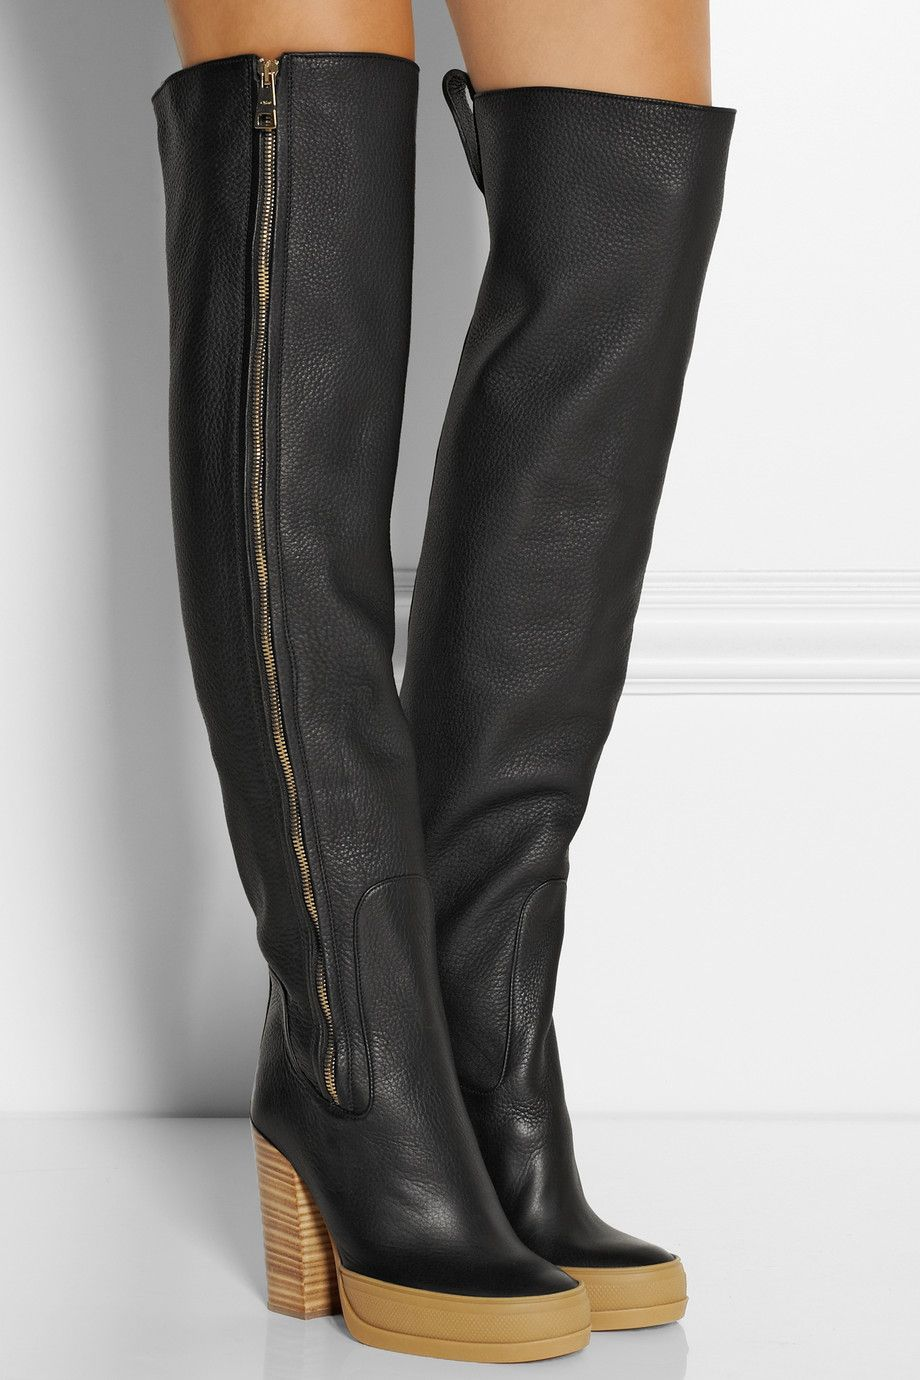 Chloé Leather Over-The-Knee Boots clearance amazing price outlet locations for sale footaction sale online Inexpensive online JA84b6W